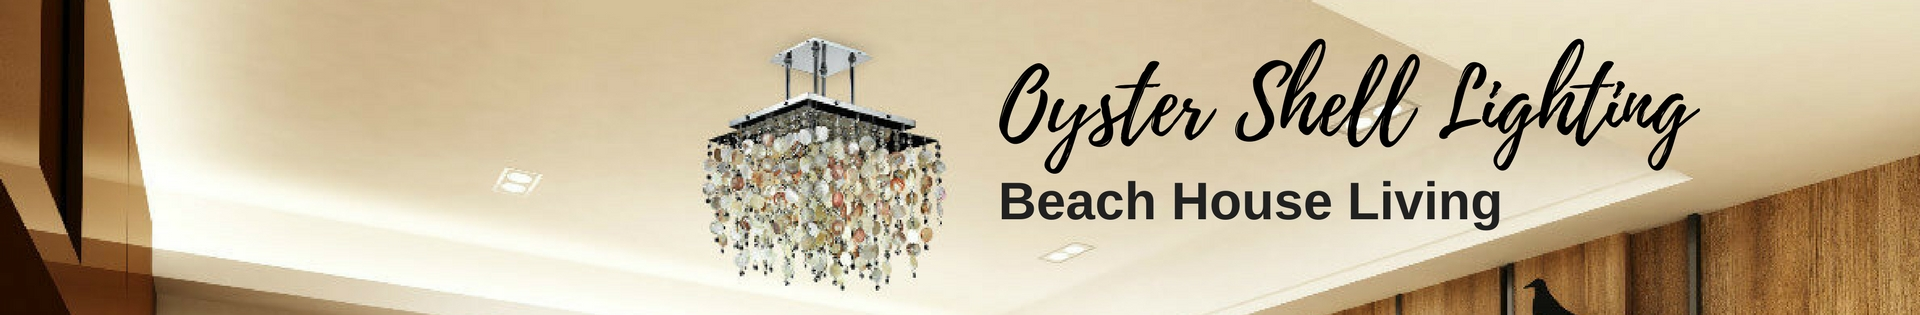 1920X315 Oyster Shell Lighting Product Category Banner Glow Lighting